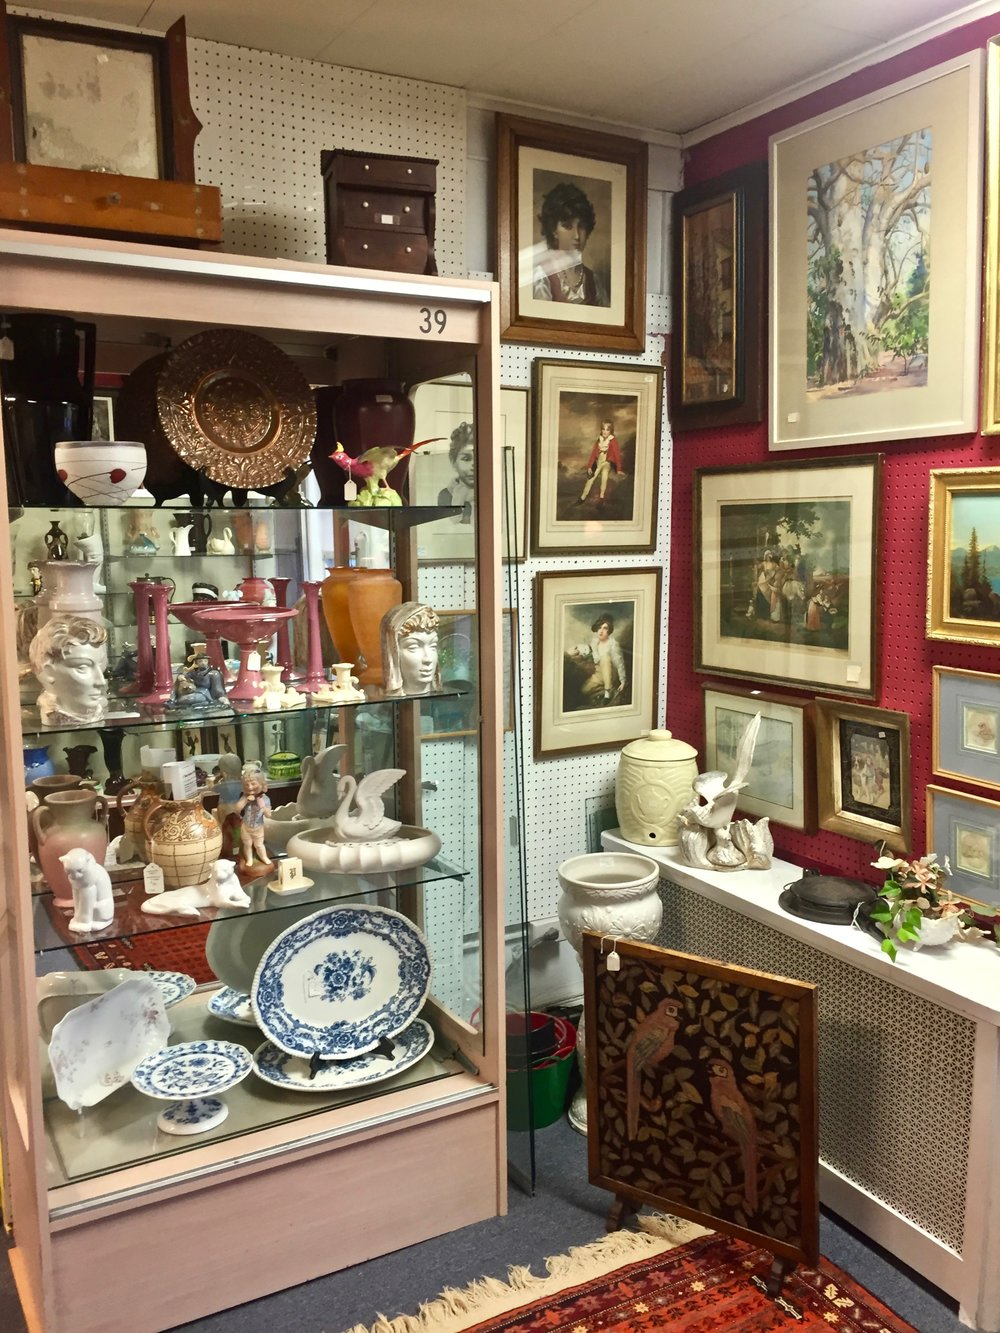 GEORGE & JUNE   George and June have been in the antiques business for more than 35 years, and at The Summit Antiques Center since 2003. They offer general antiques and art and can be found on the 2nd floor.